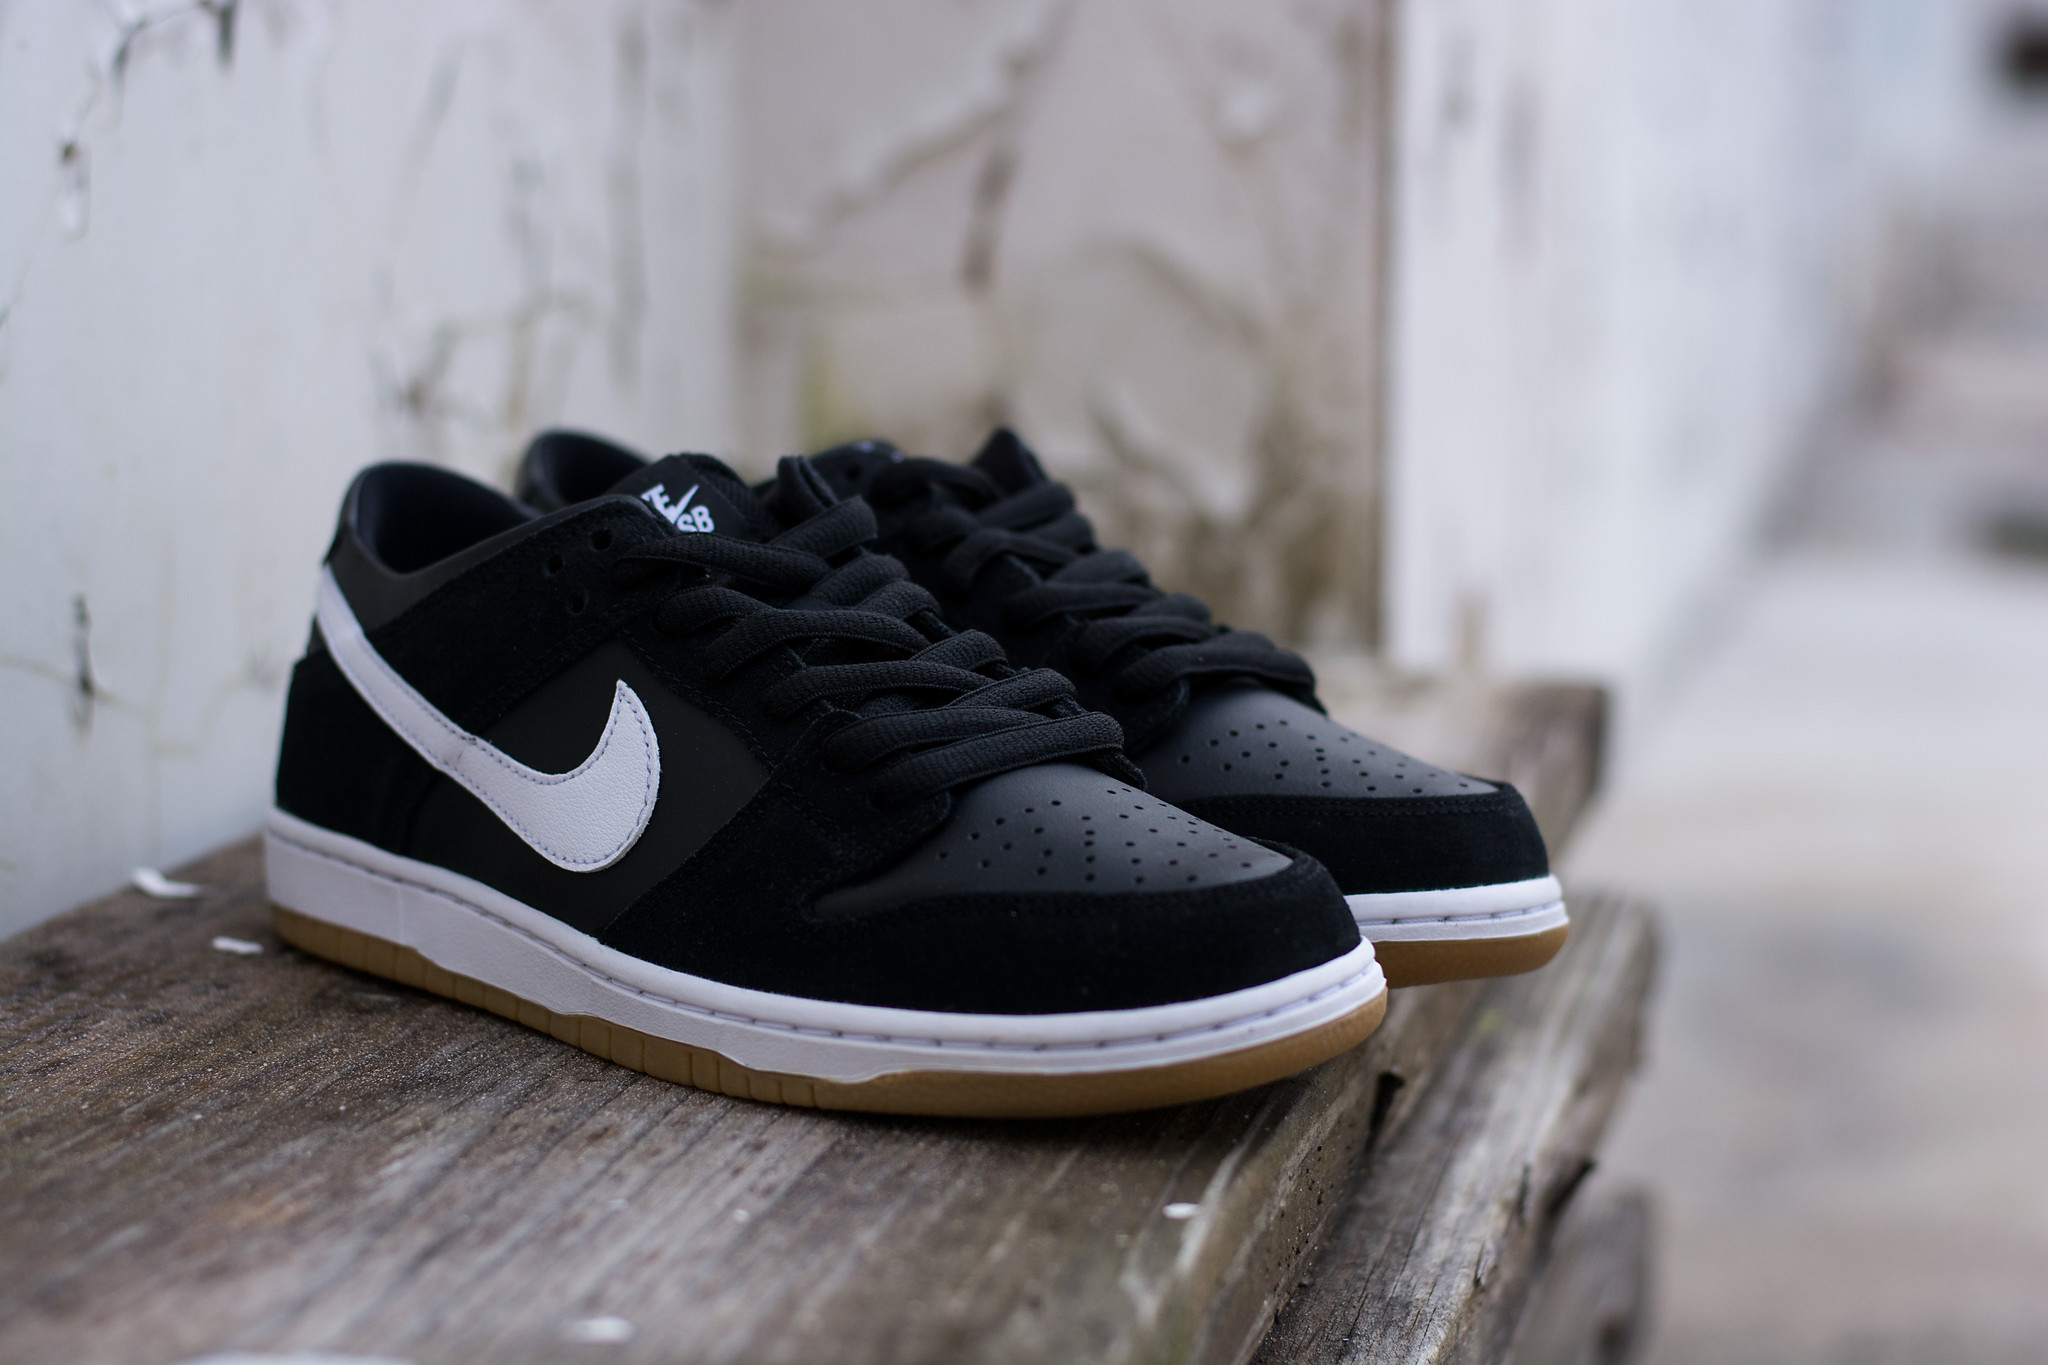 huge discount d47a1 9eaf3 ... discount available now bluetile for 89.99 nike sb dunk low pro black  white gum 1e54c ece07